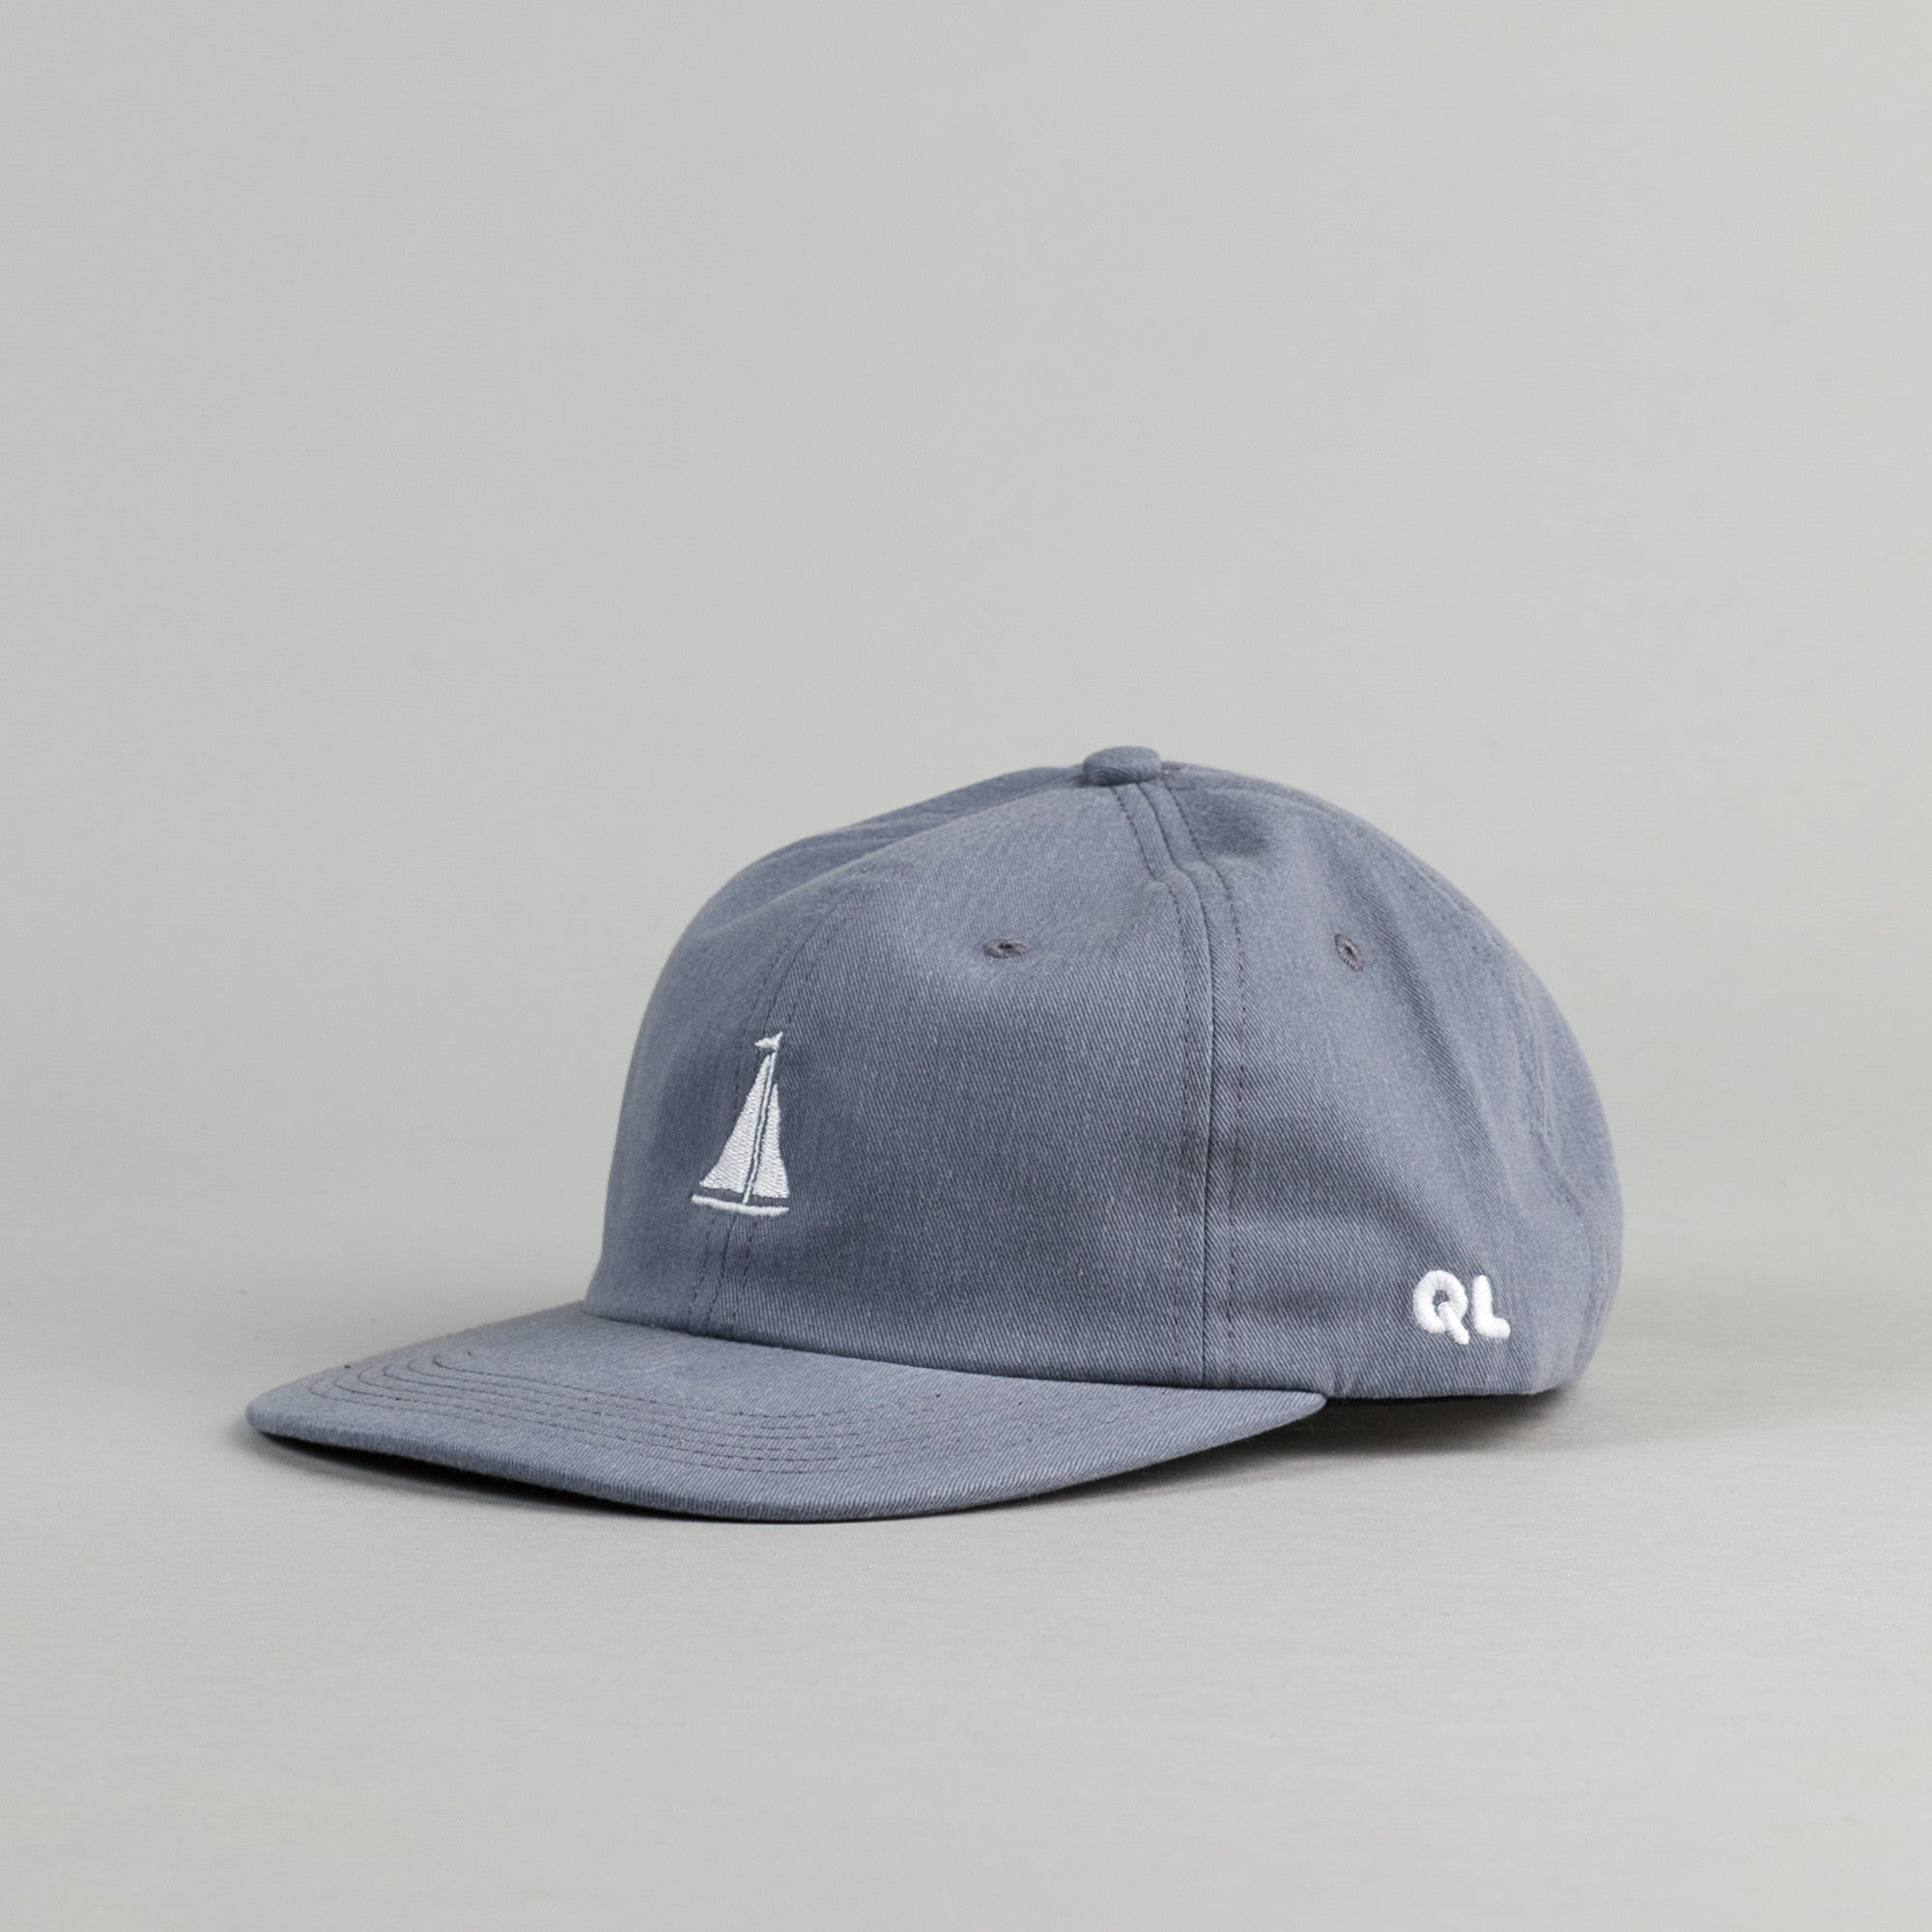 The Quiet Life Sail Polo Cap - Steel Blue